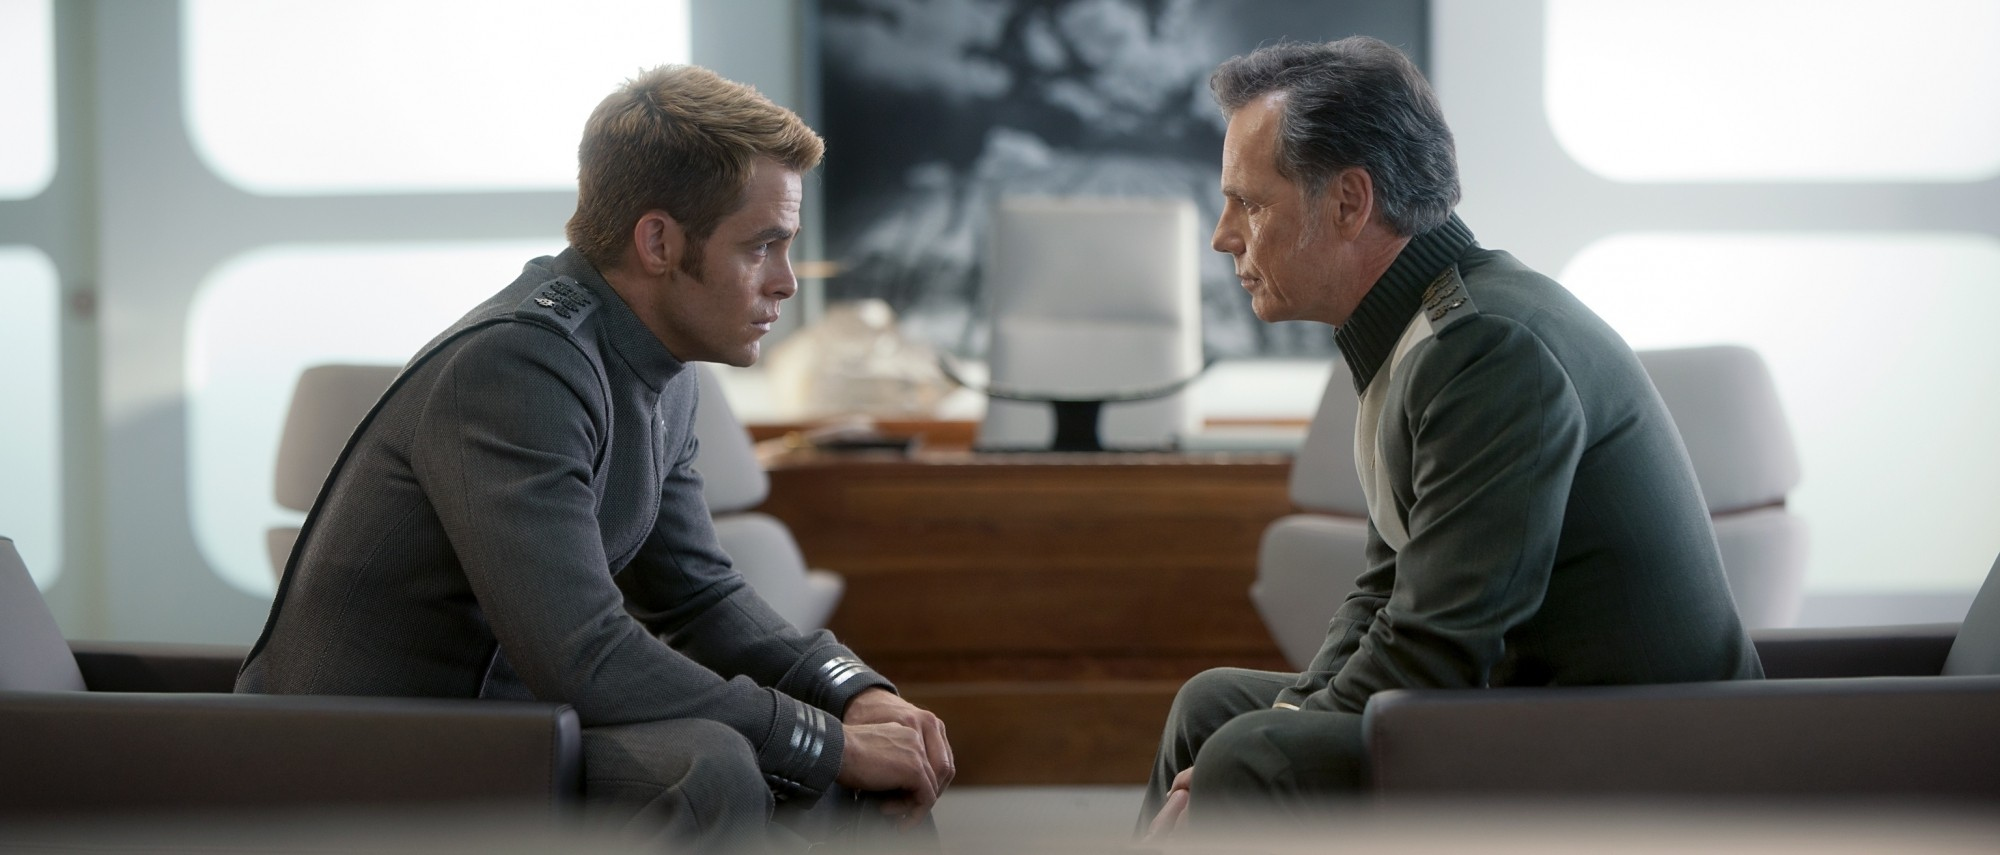 Bruce Greenwood and Chris Pine in Star Trek Into Darkness